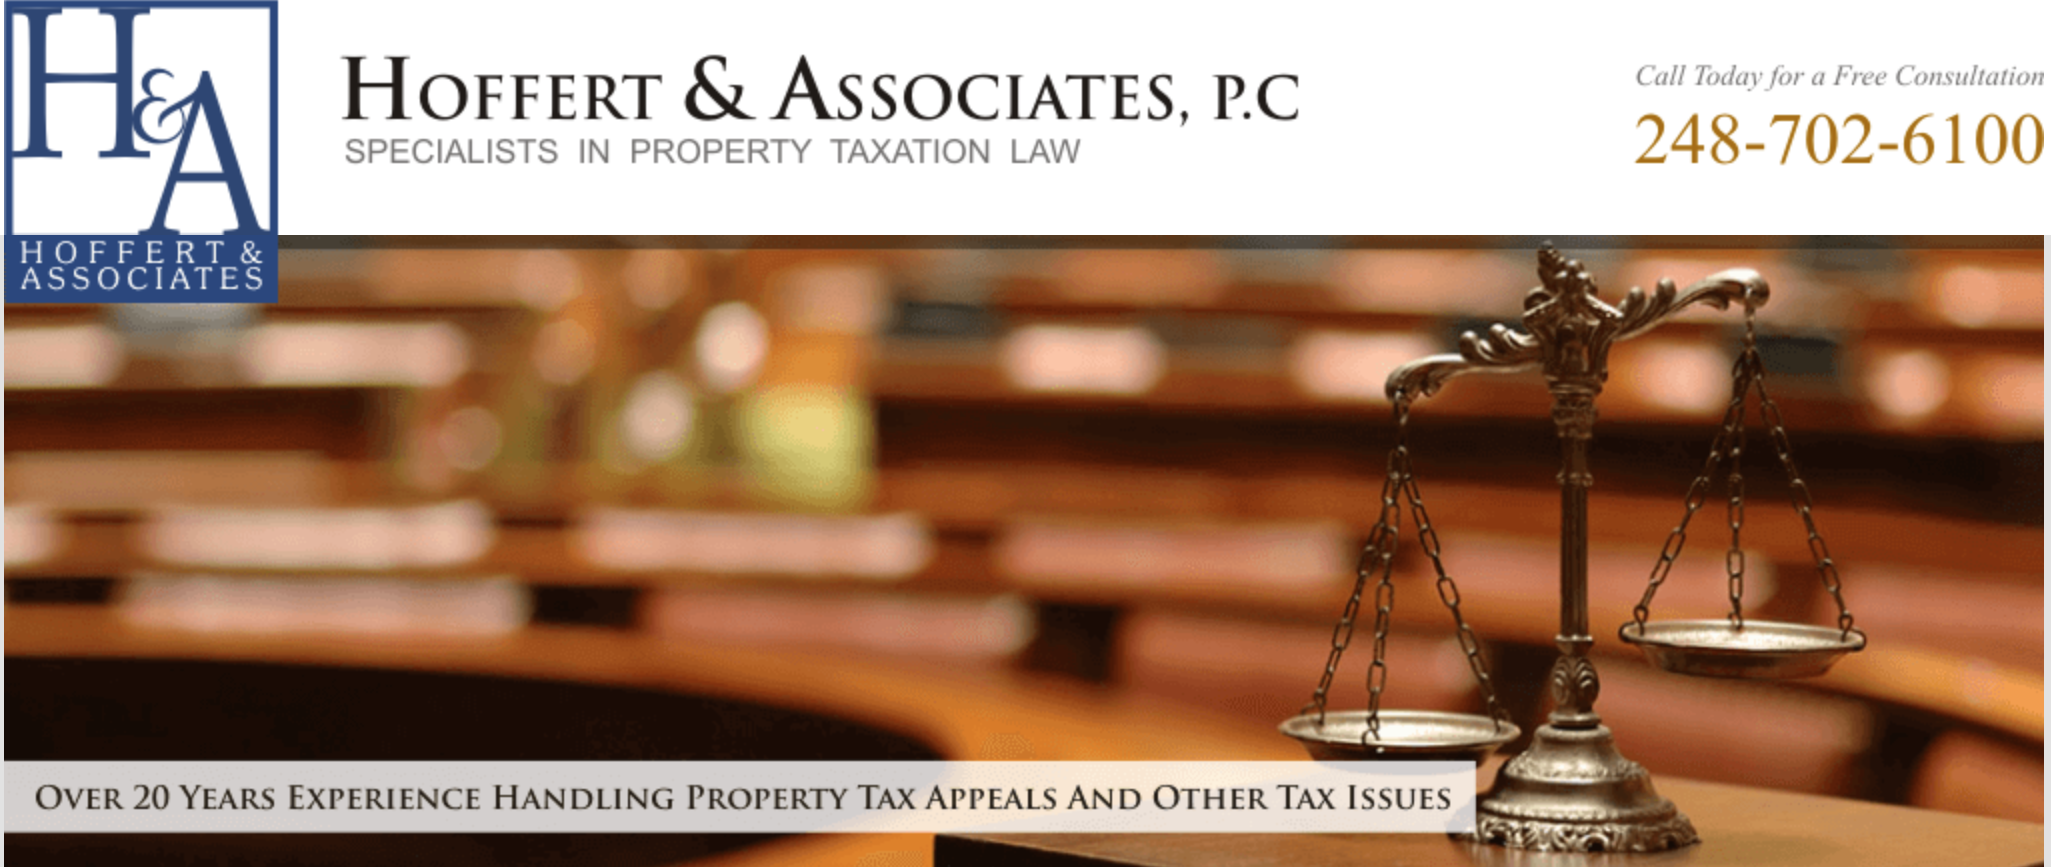 Hoffert and Associates, P.C.